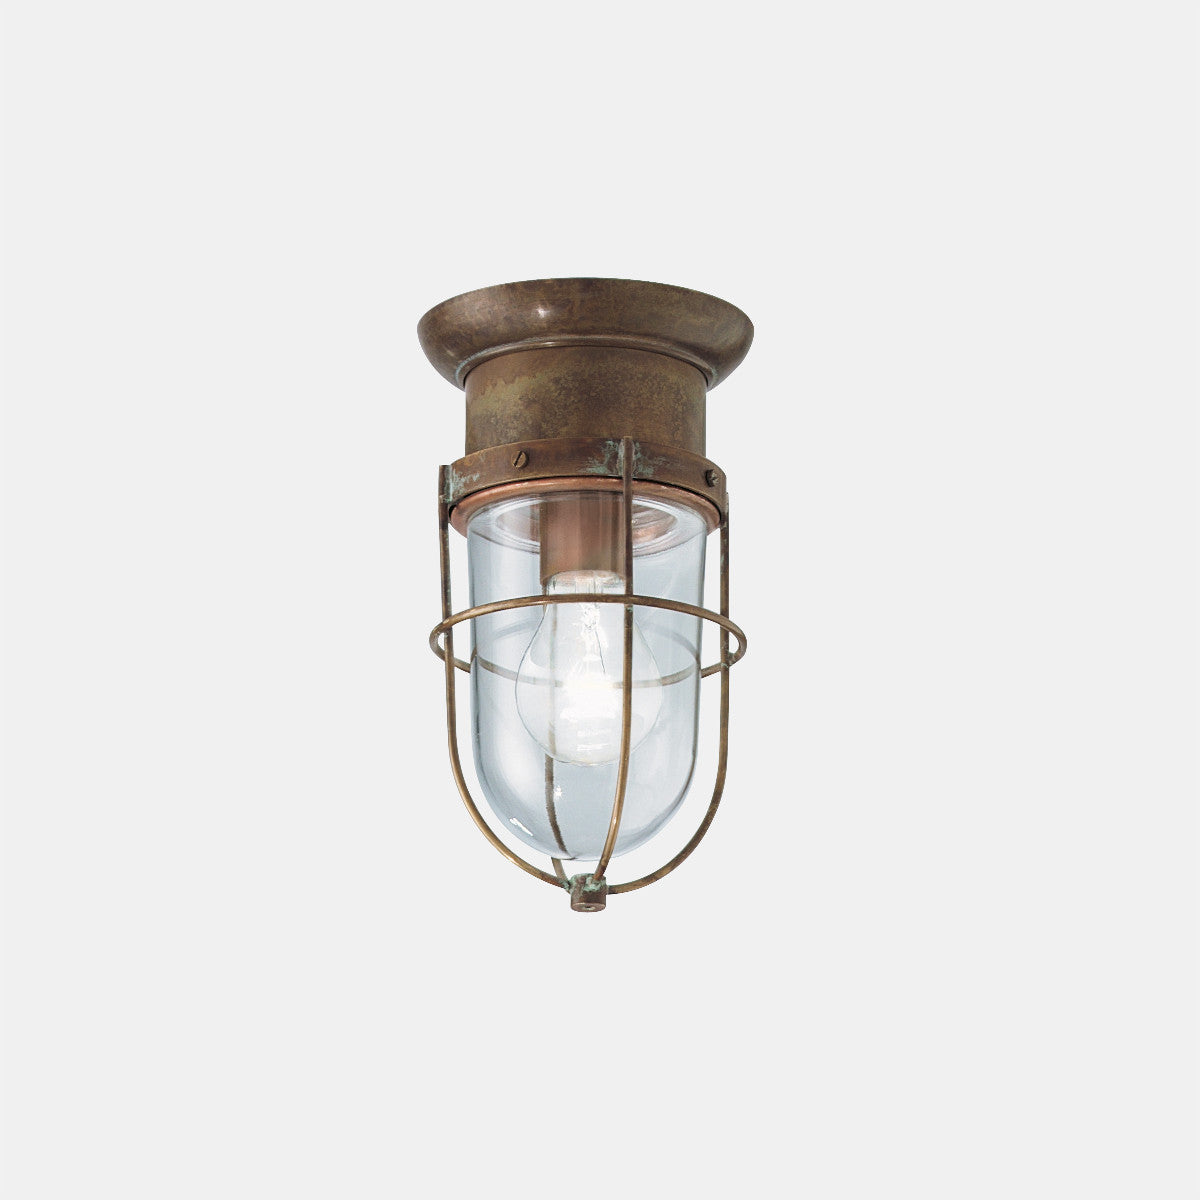 GARDEN Outdoor Ceiling Light 245.50